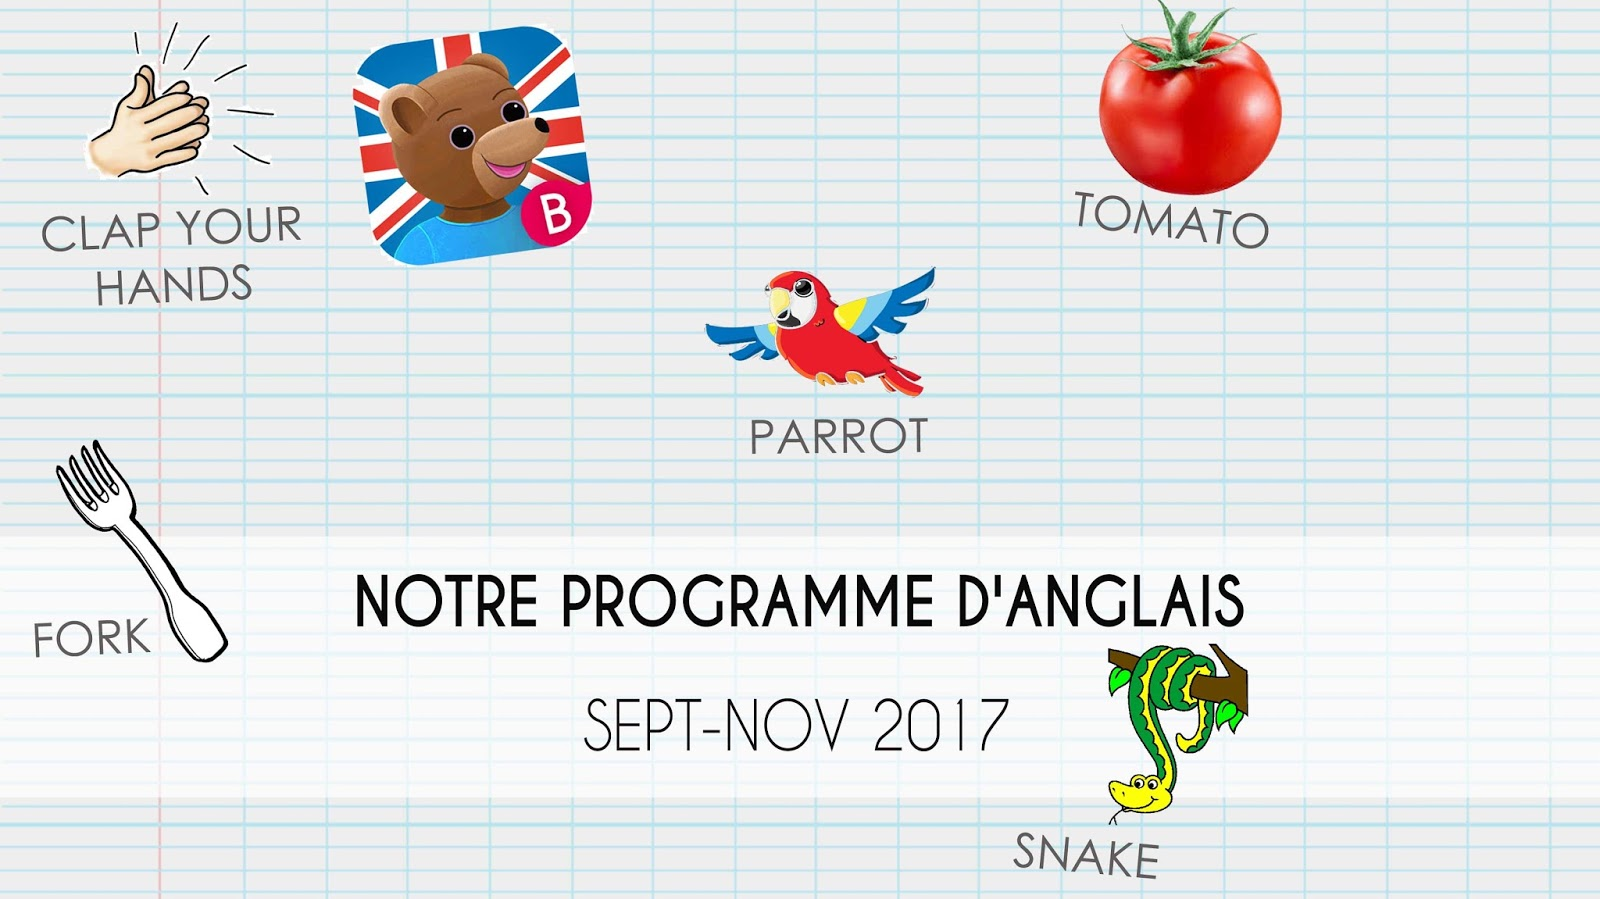 High Five Family programme apprendre anglais enfants septembre novembre 2017